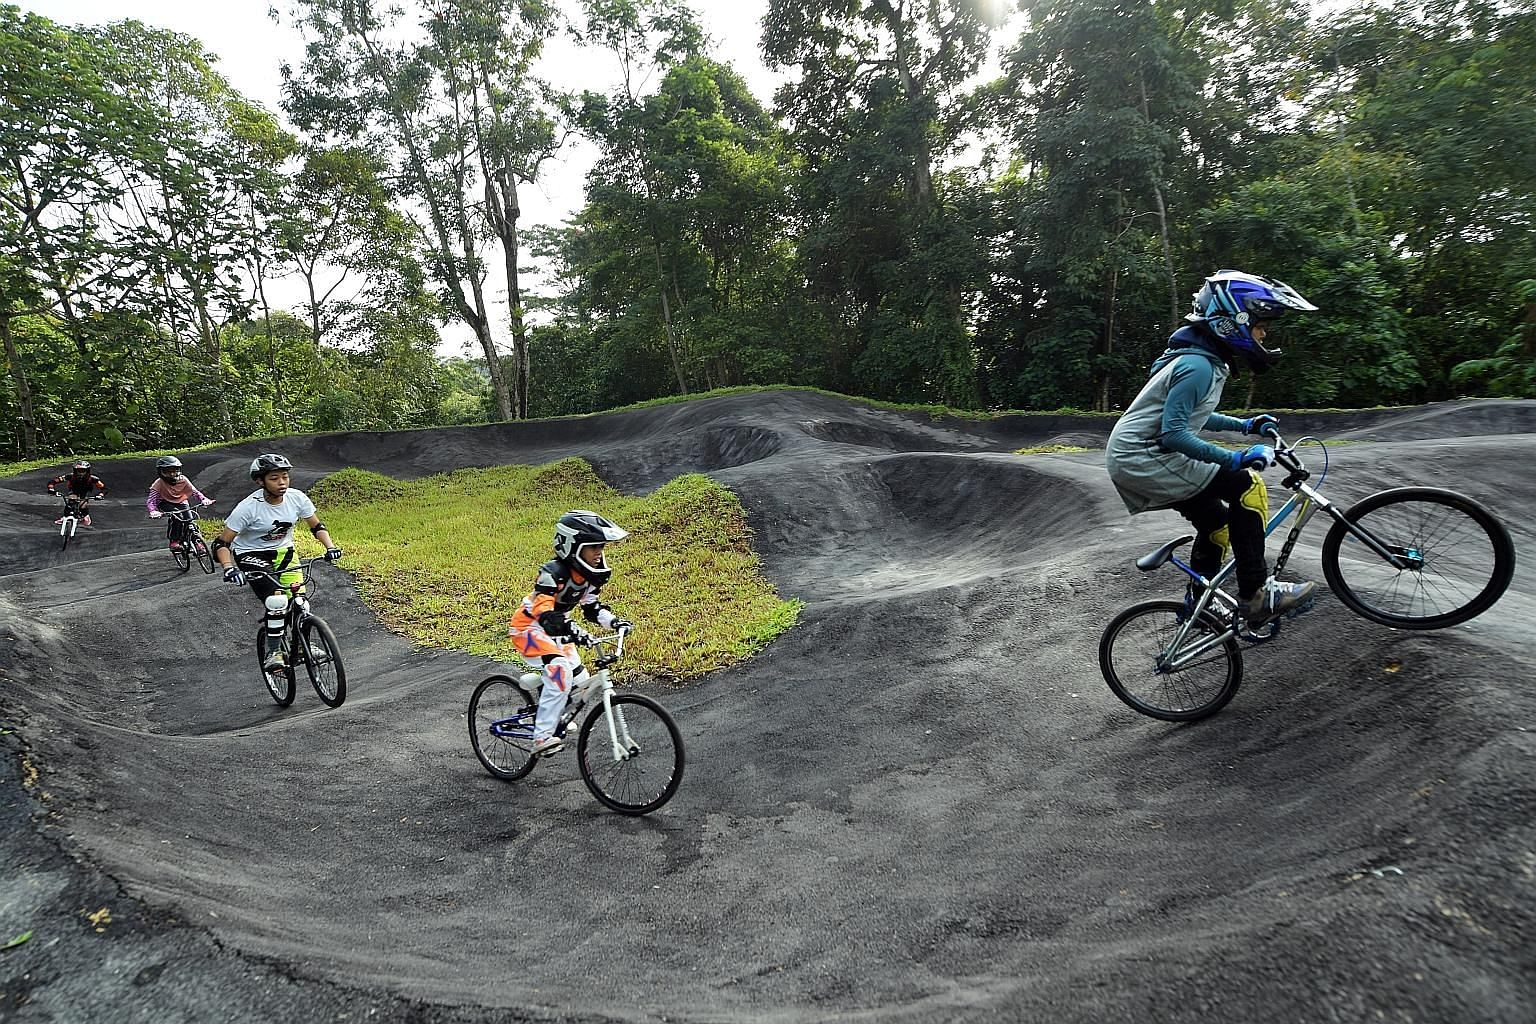 Children were among the biking enthusiasts who tried out Singapore's first pump track at Chestnut Nature Park yesterday. The track has four sections, called bowls, of varying difficulties. The park is now fully open after the northern section's openi